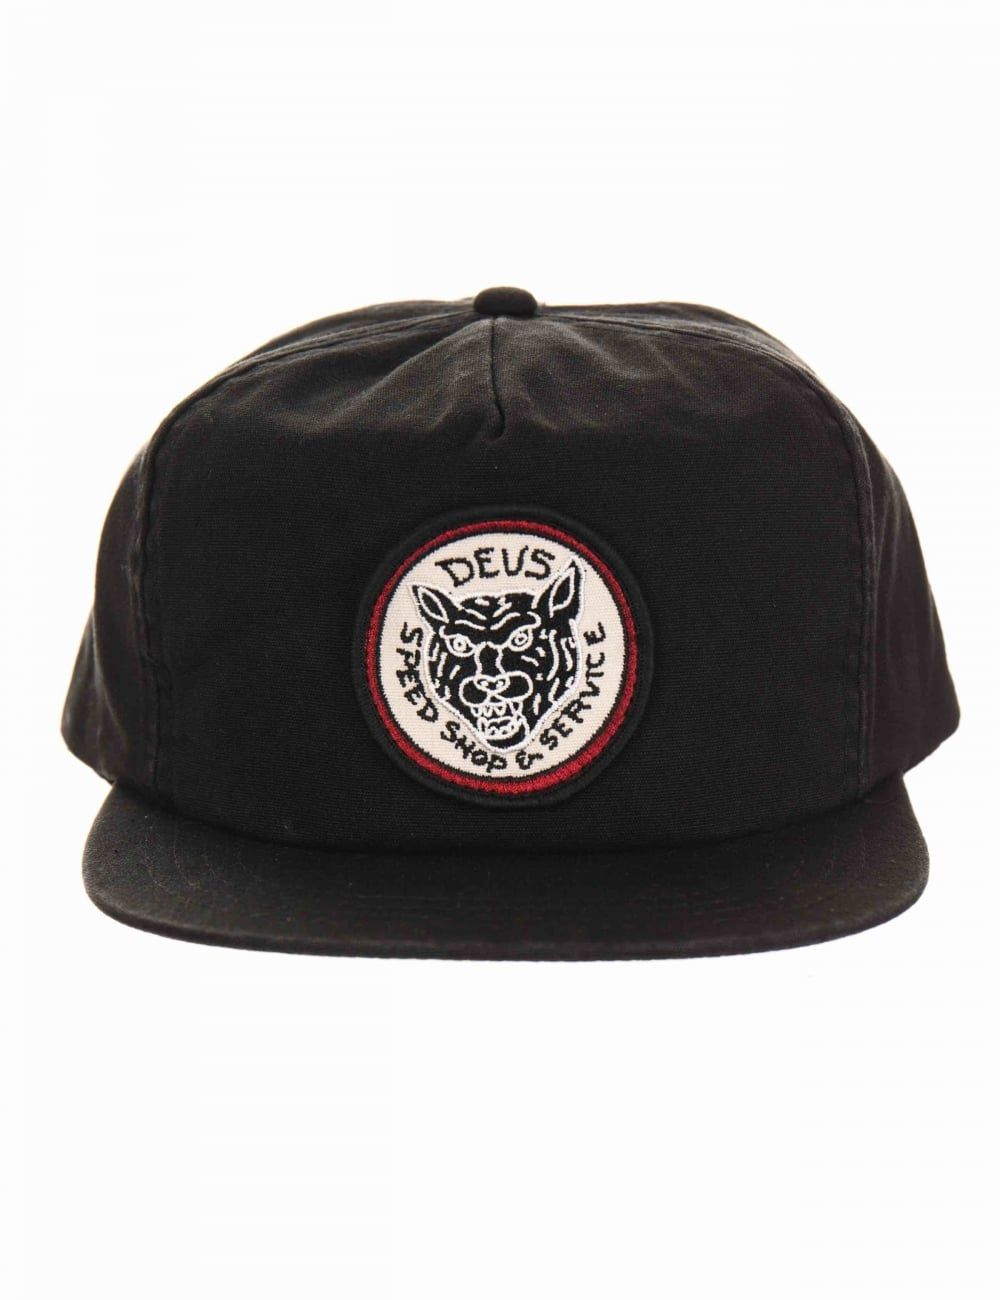 b34e0e0f243 Deus Ex Machina Tiger Head Cap - Washed Black - Hat Shop from Fat Buddha  Store UK